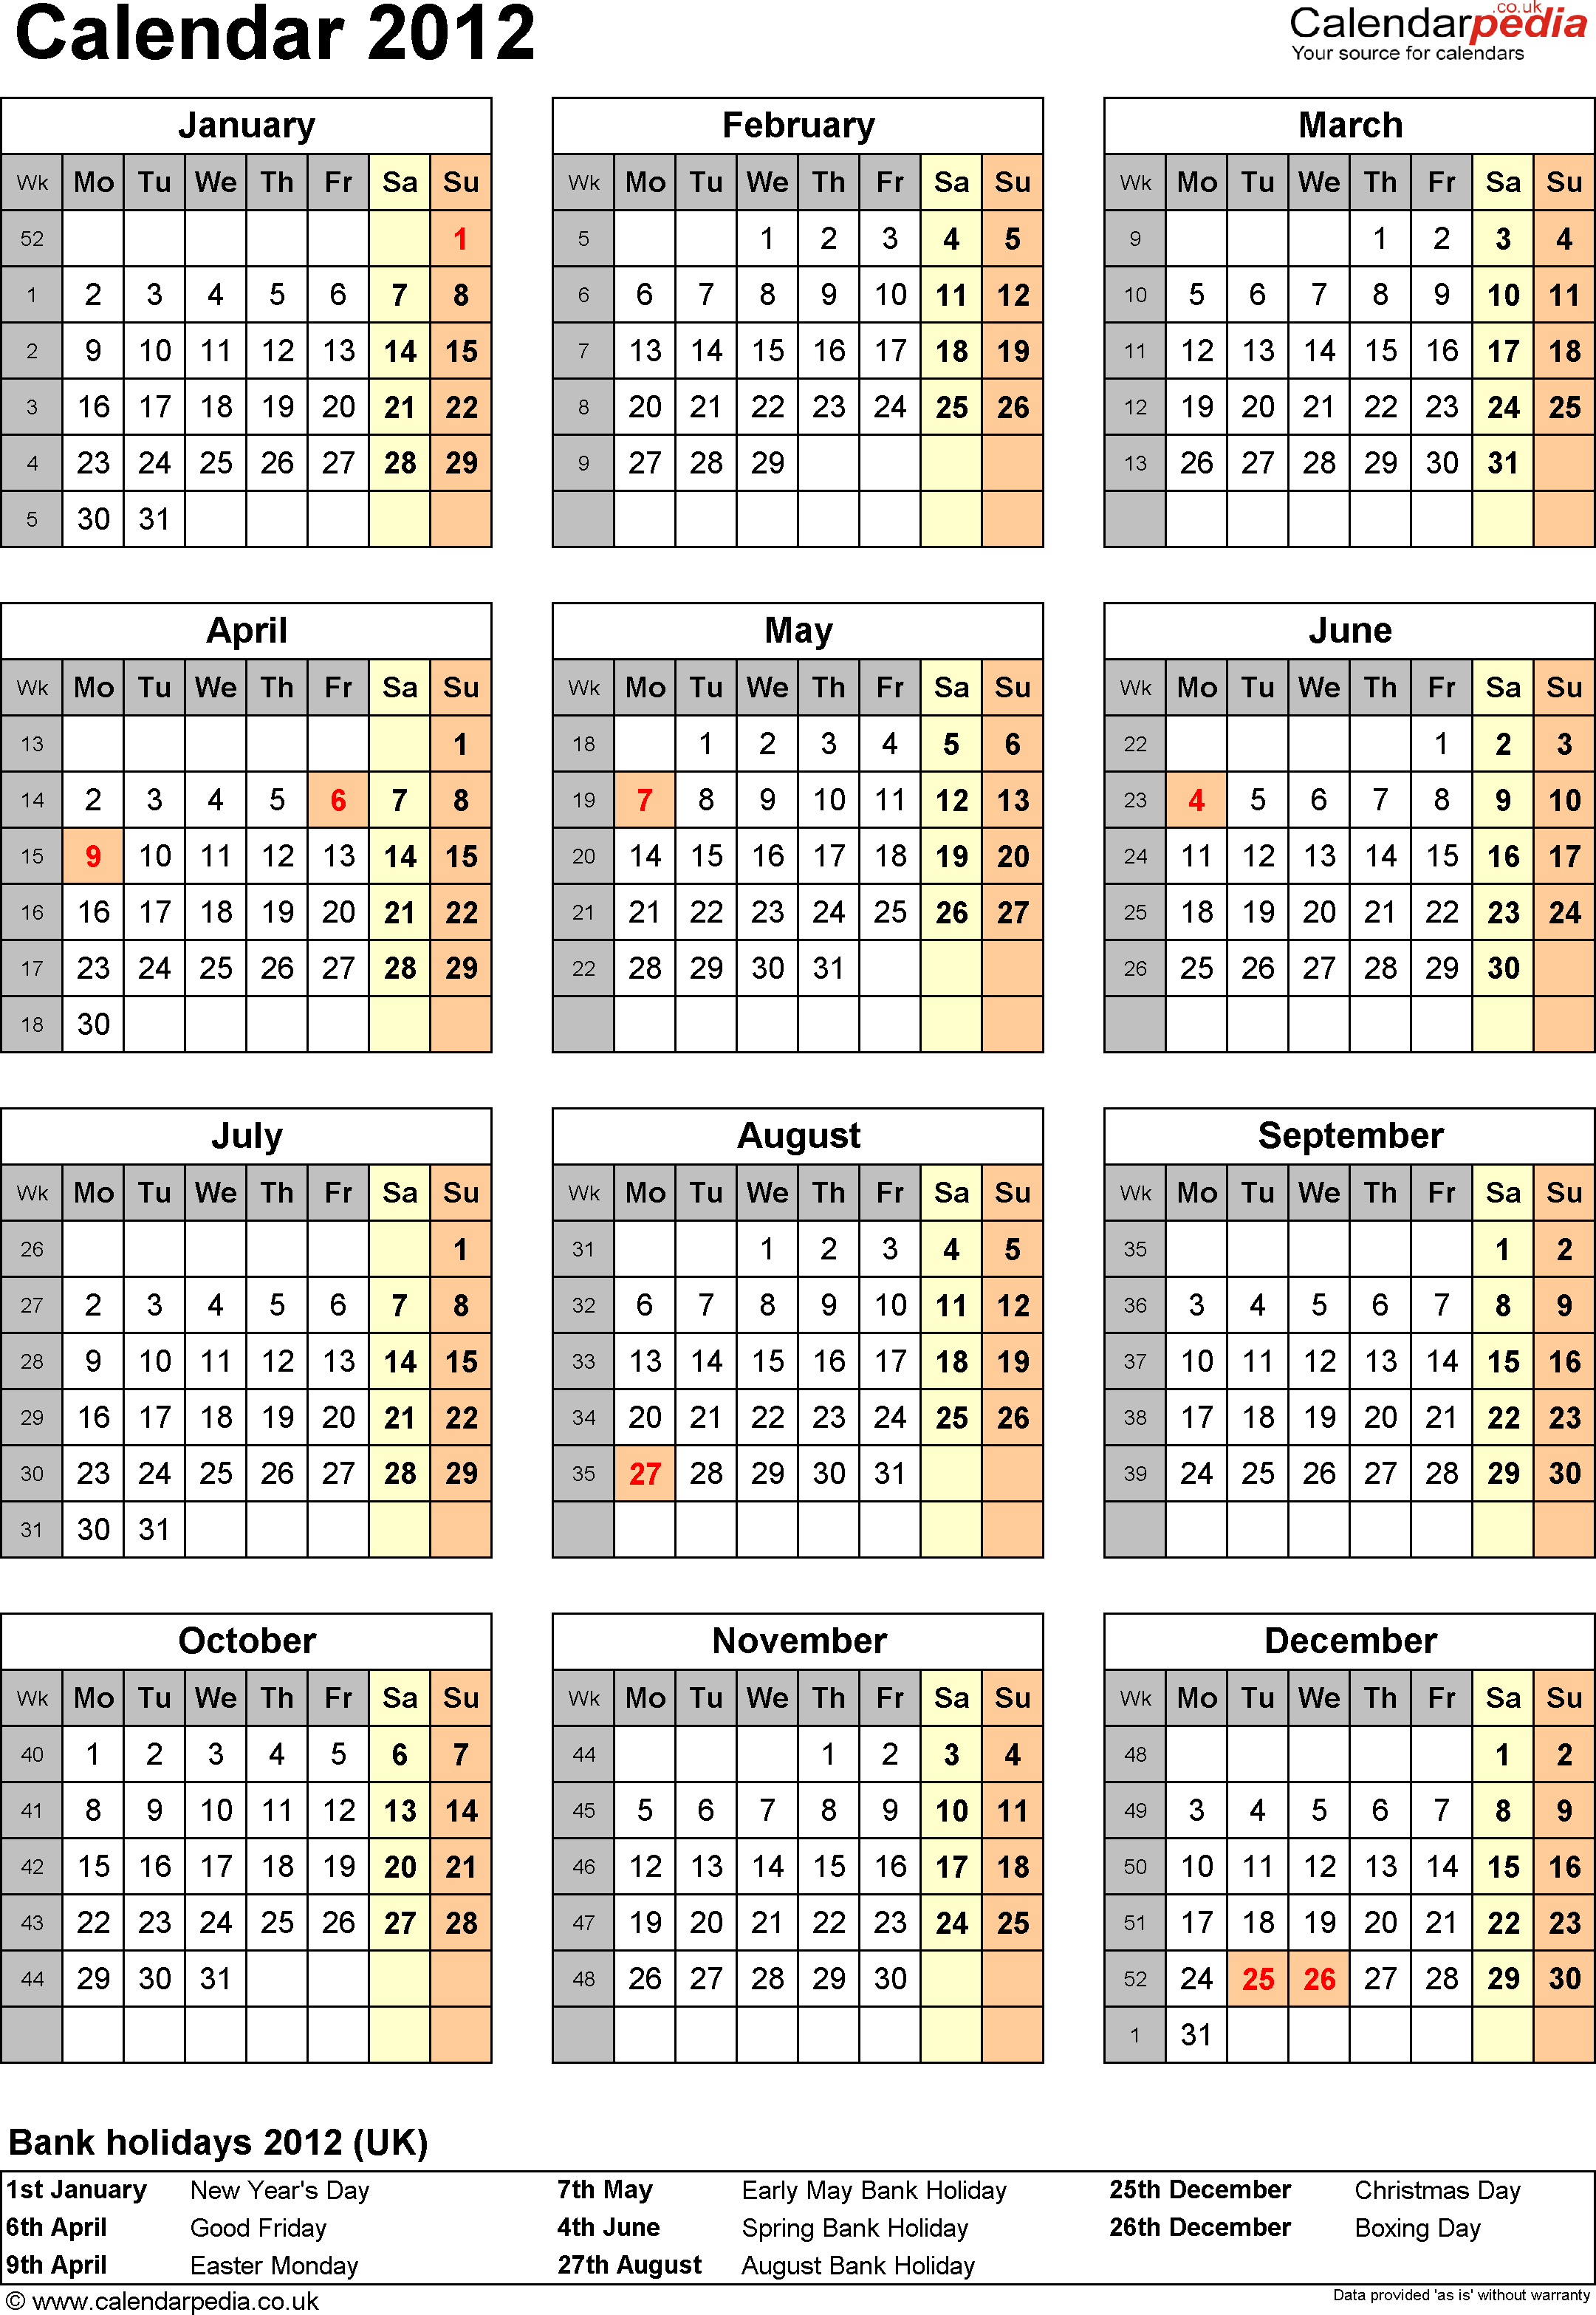 Template 11: Yearly calendar 2012 as Word template, portrait orientation, one A4 page